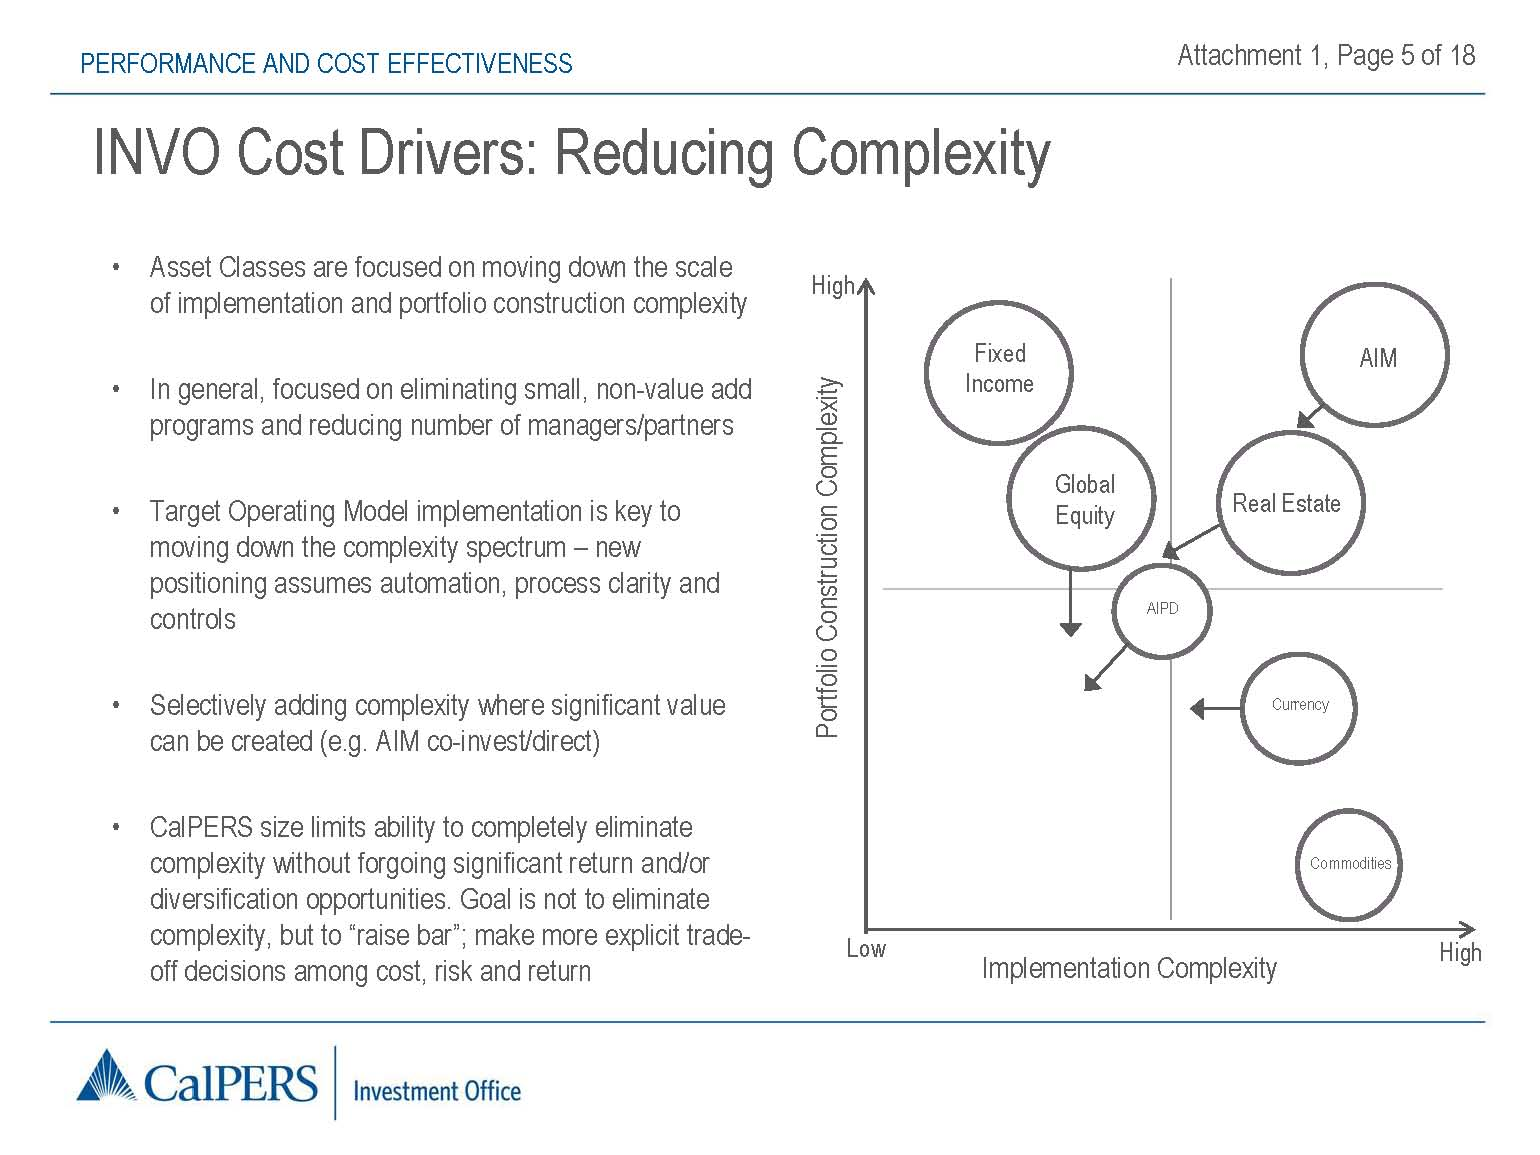 3.12.12_Calpers_Investment_Office_Reducing_Complexity_Extracted_P.5